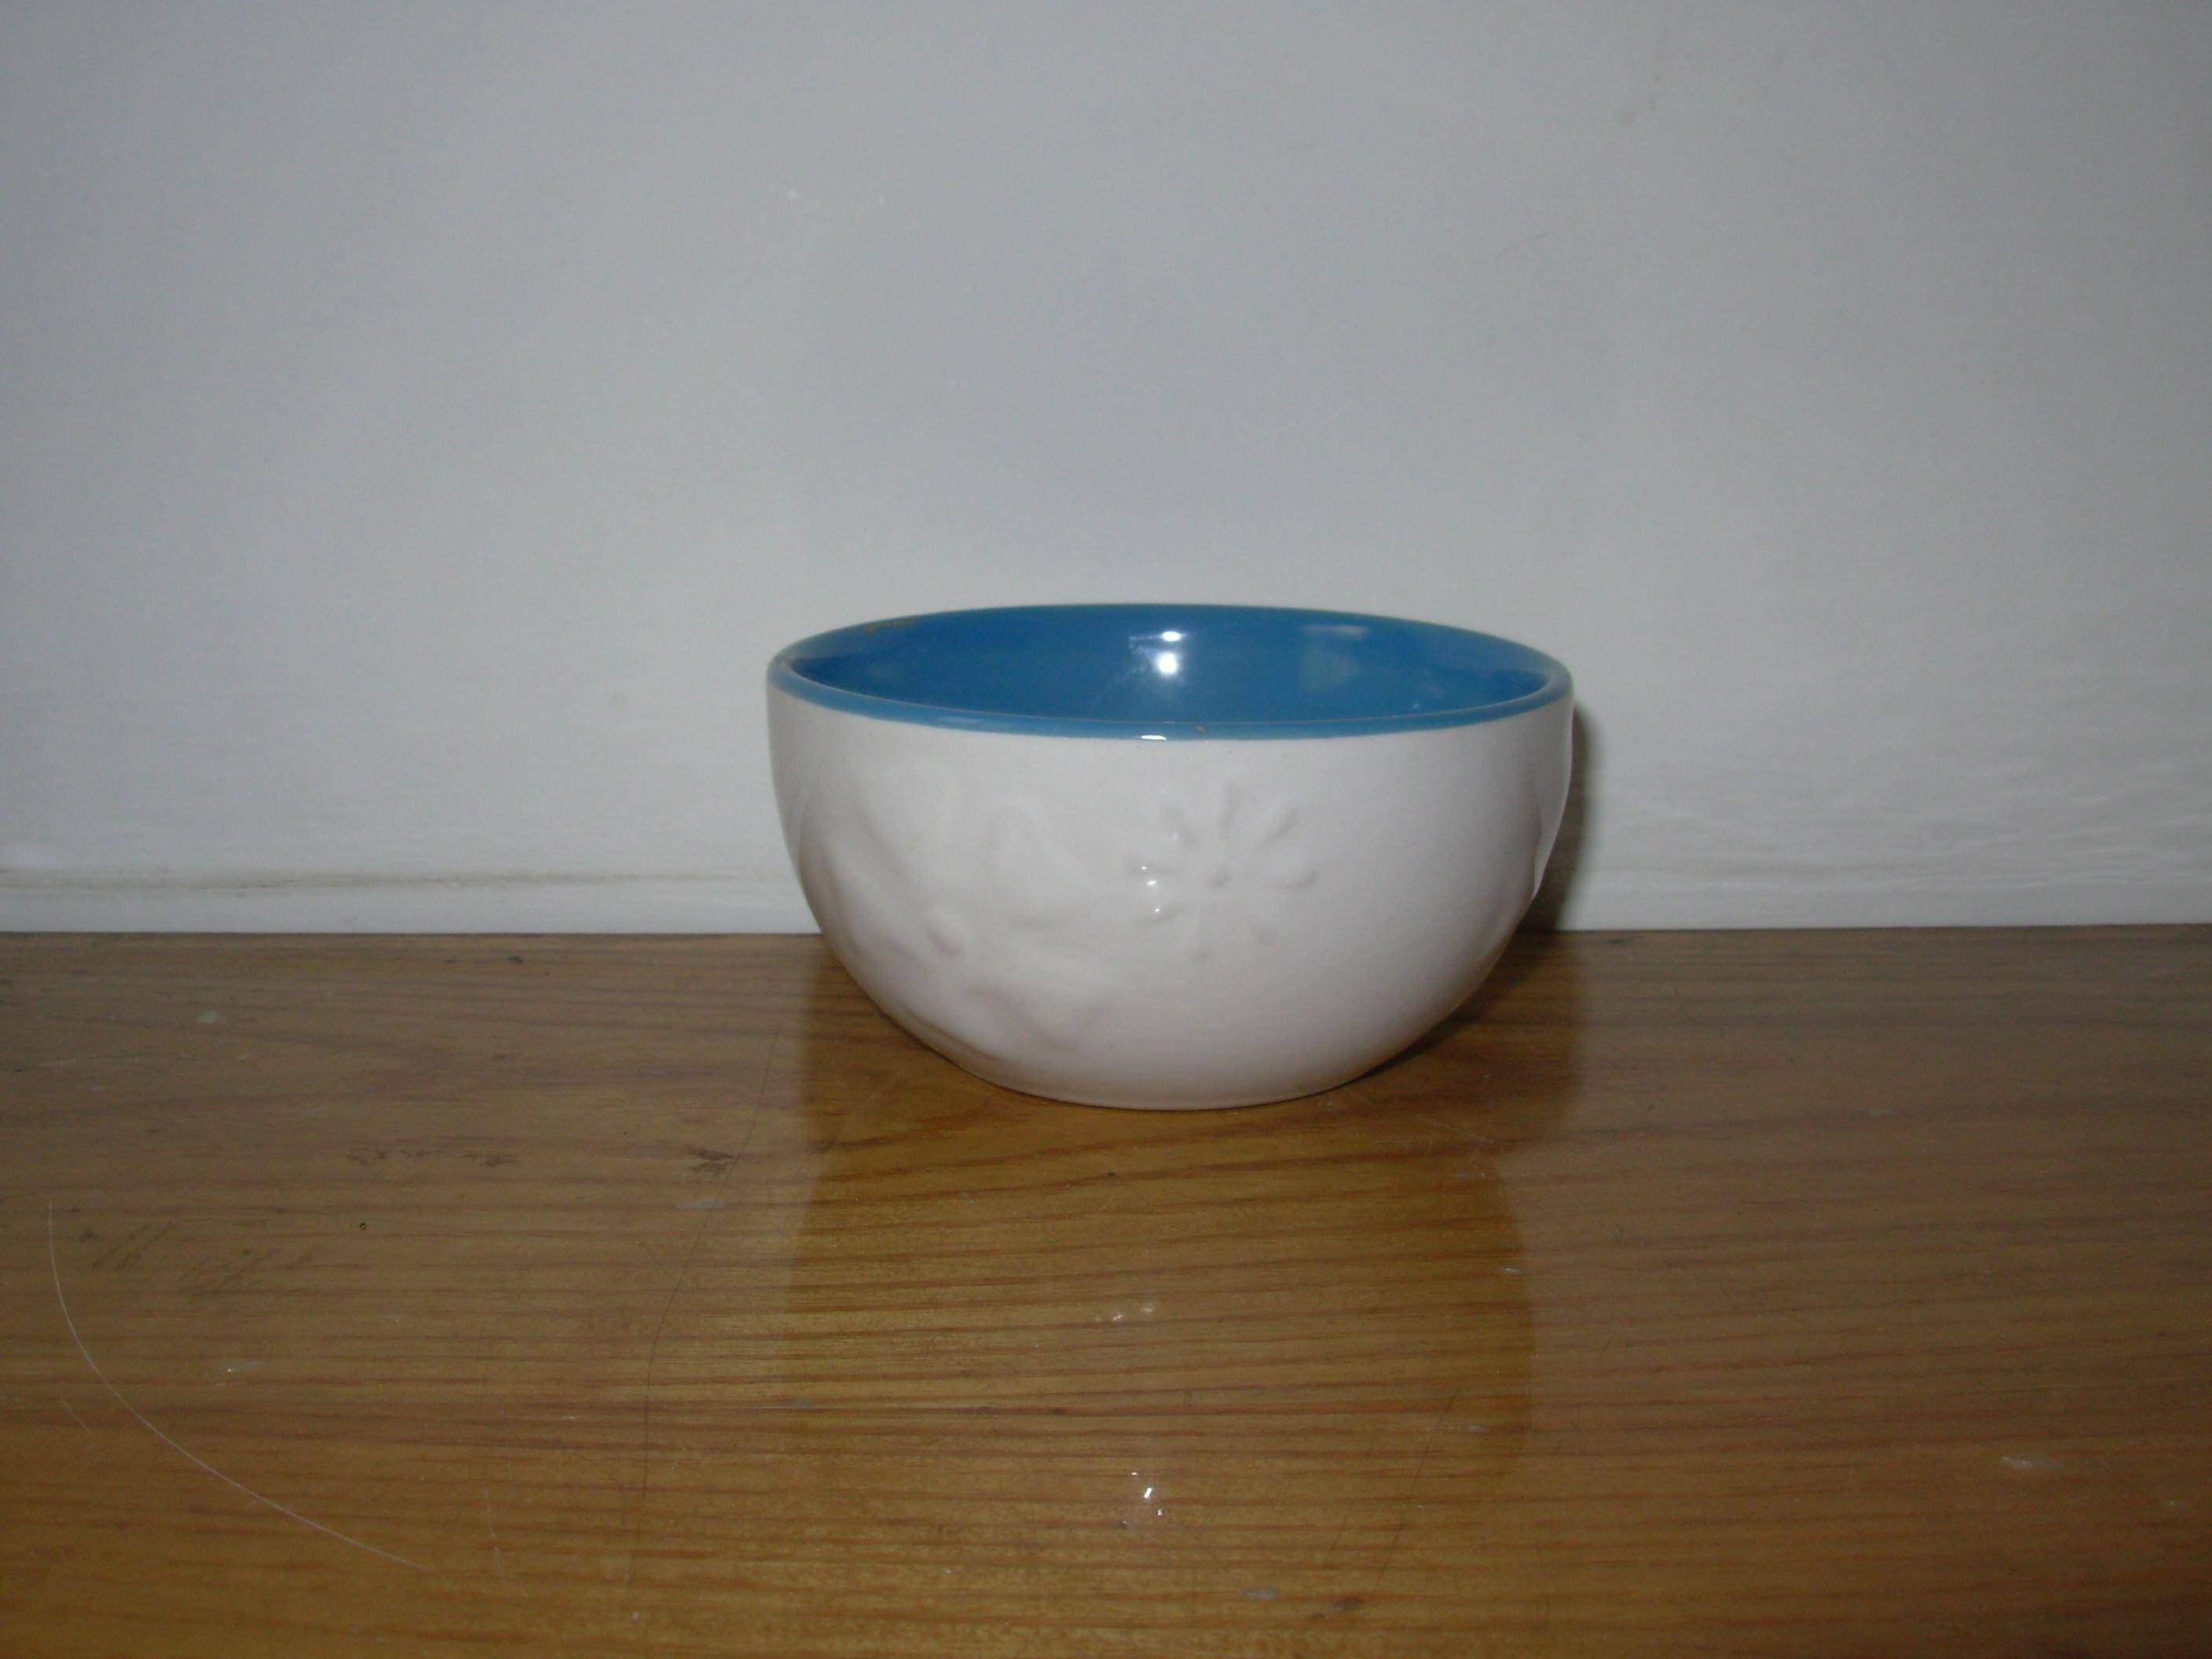 Ceramic football Bowl with Logo, Dishwasher, Microwave and Oven Safe